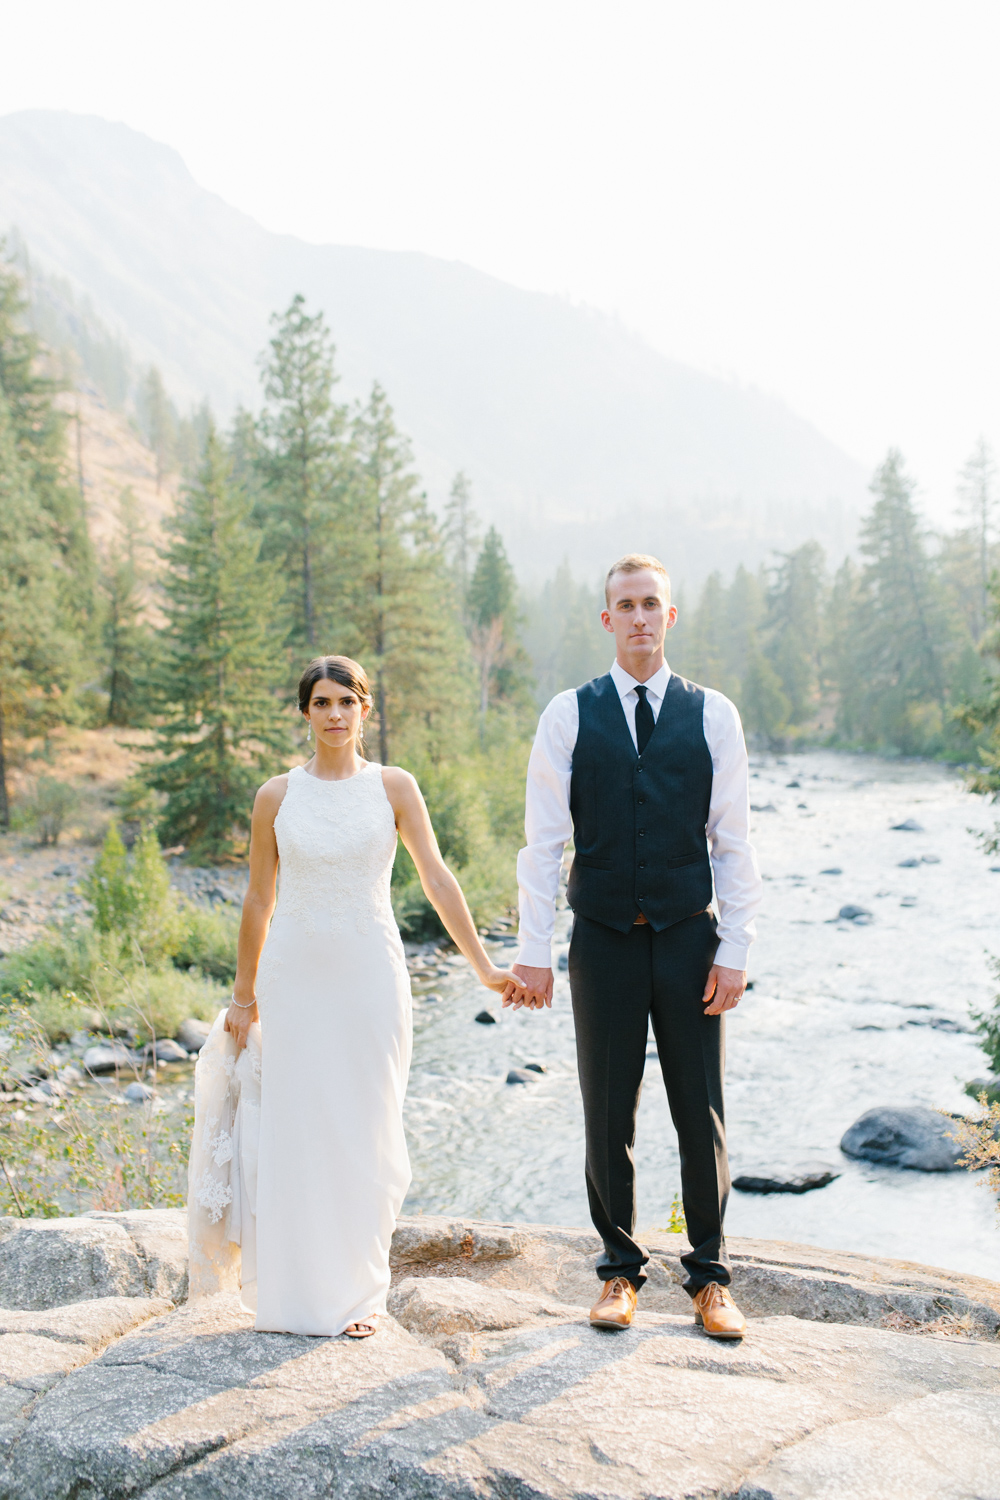 Grey and White Wedding in the Mountains of Leavenworth, Washington | Sleeping Lady | Classic and Timeless Wedding | VSCO | Stunning Mountain Top Bride and Groom Portraits on the Icicle River.jpg-3379.jpg